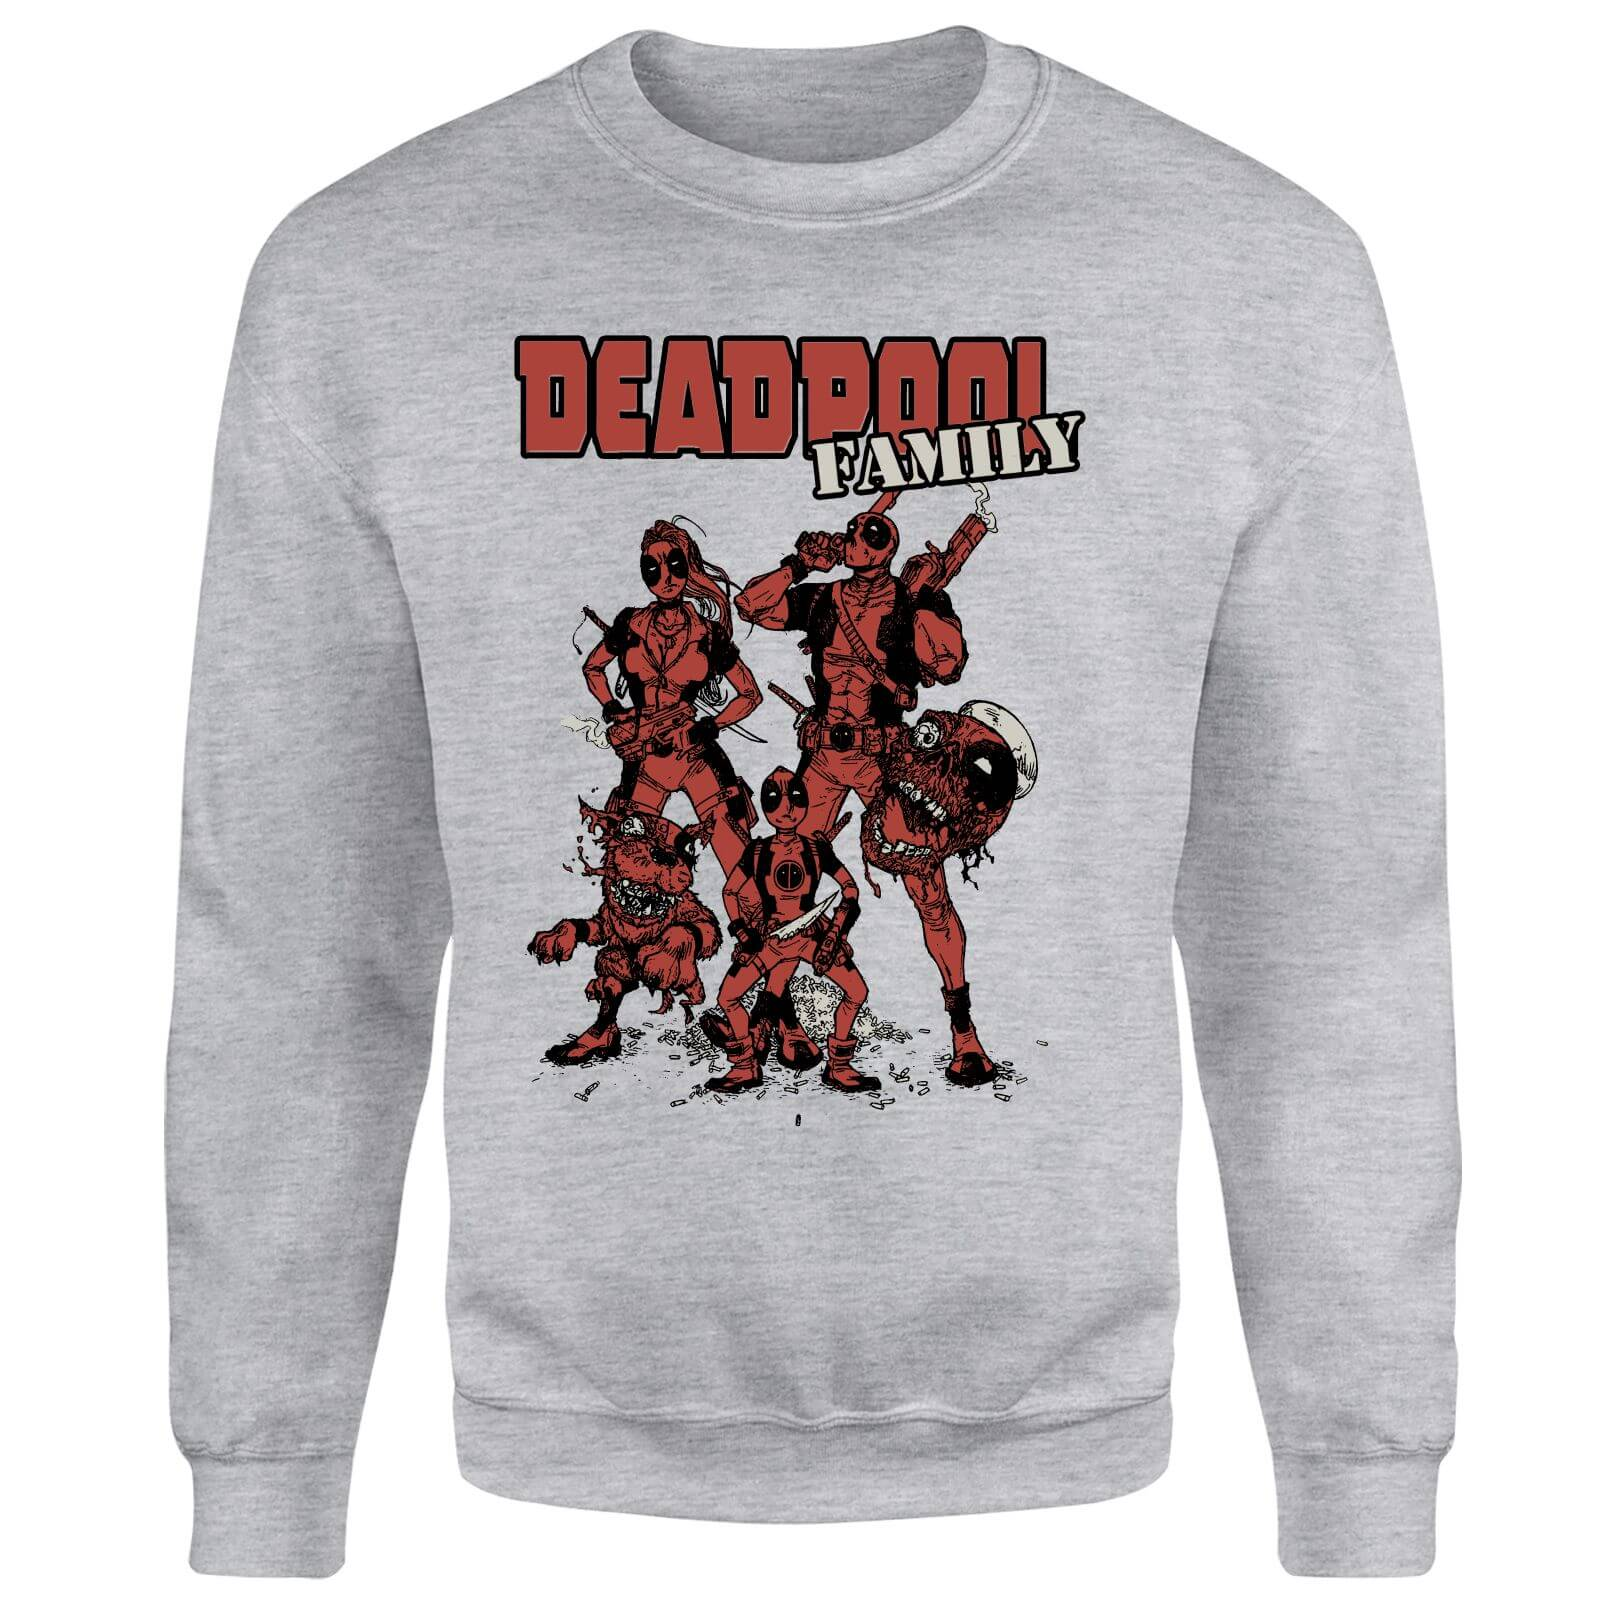 Marvel Deadpool Family Group Sweatshirt - Grey